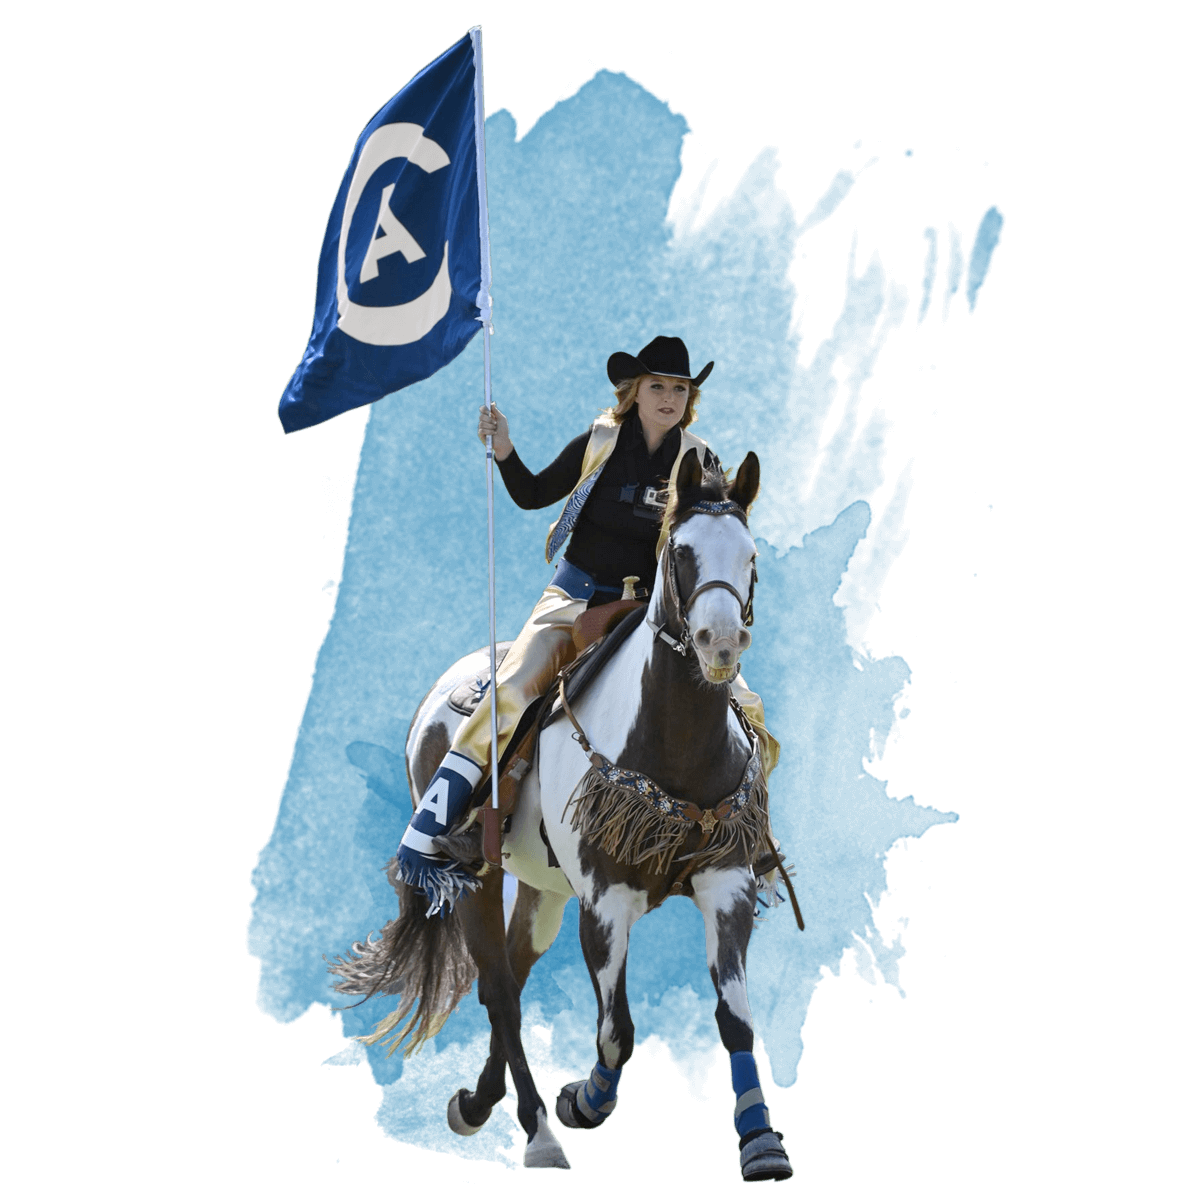 Maggie the Aggie riding her UC Davis branded horse out onto the football field